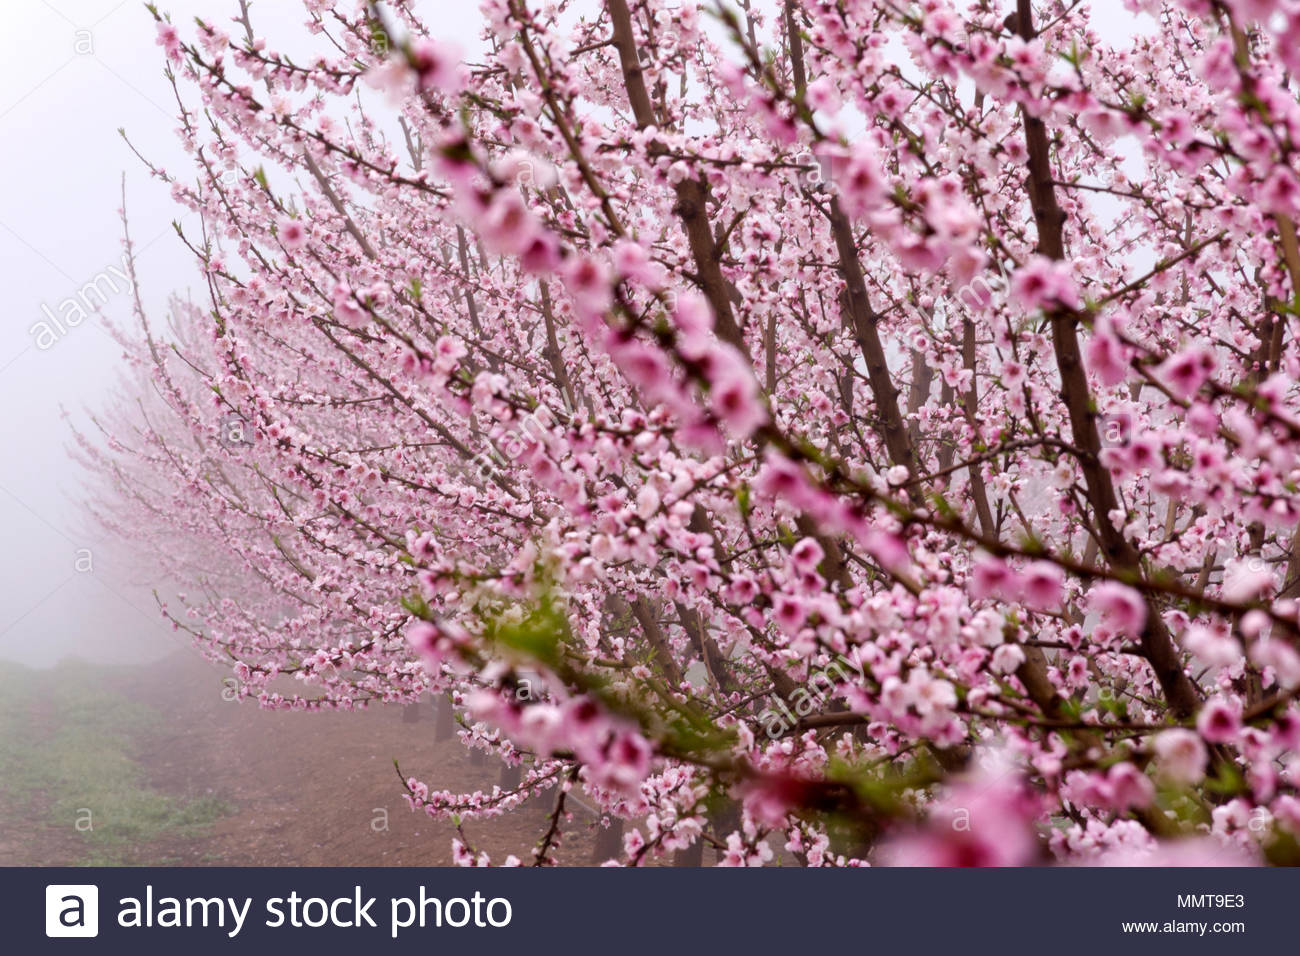 Field With Rows Of Peach Treeswith Branches Full Of Delicate Pink